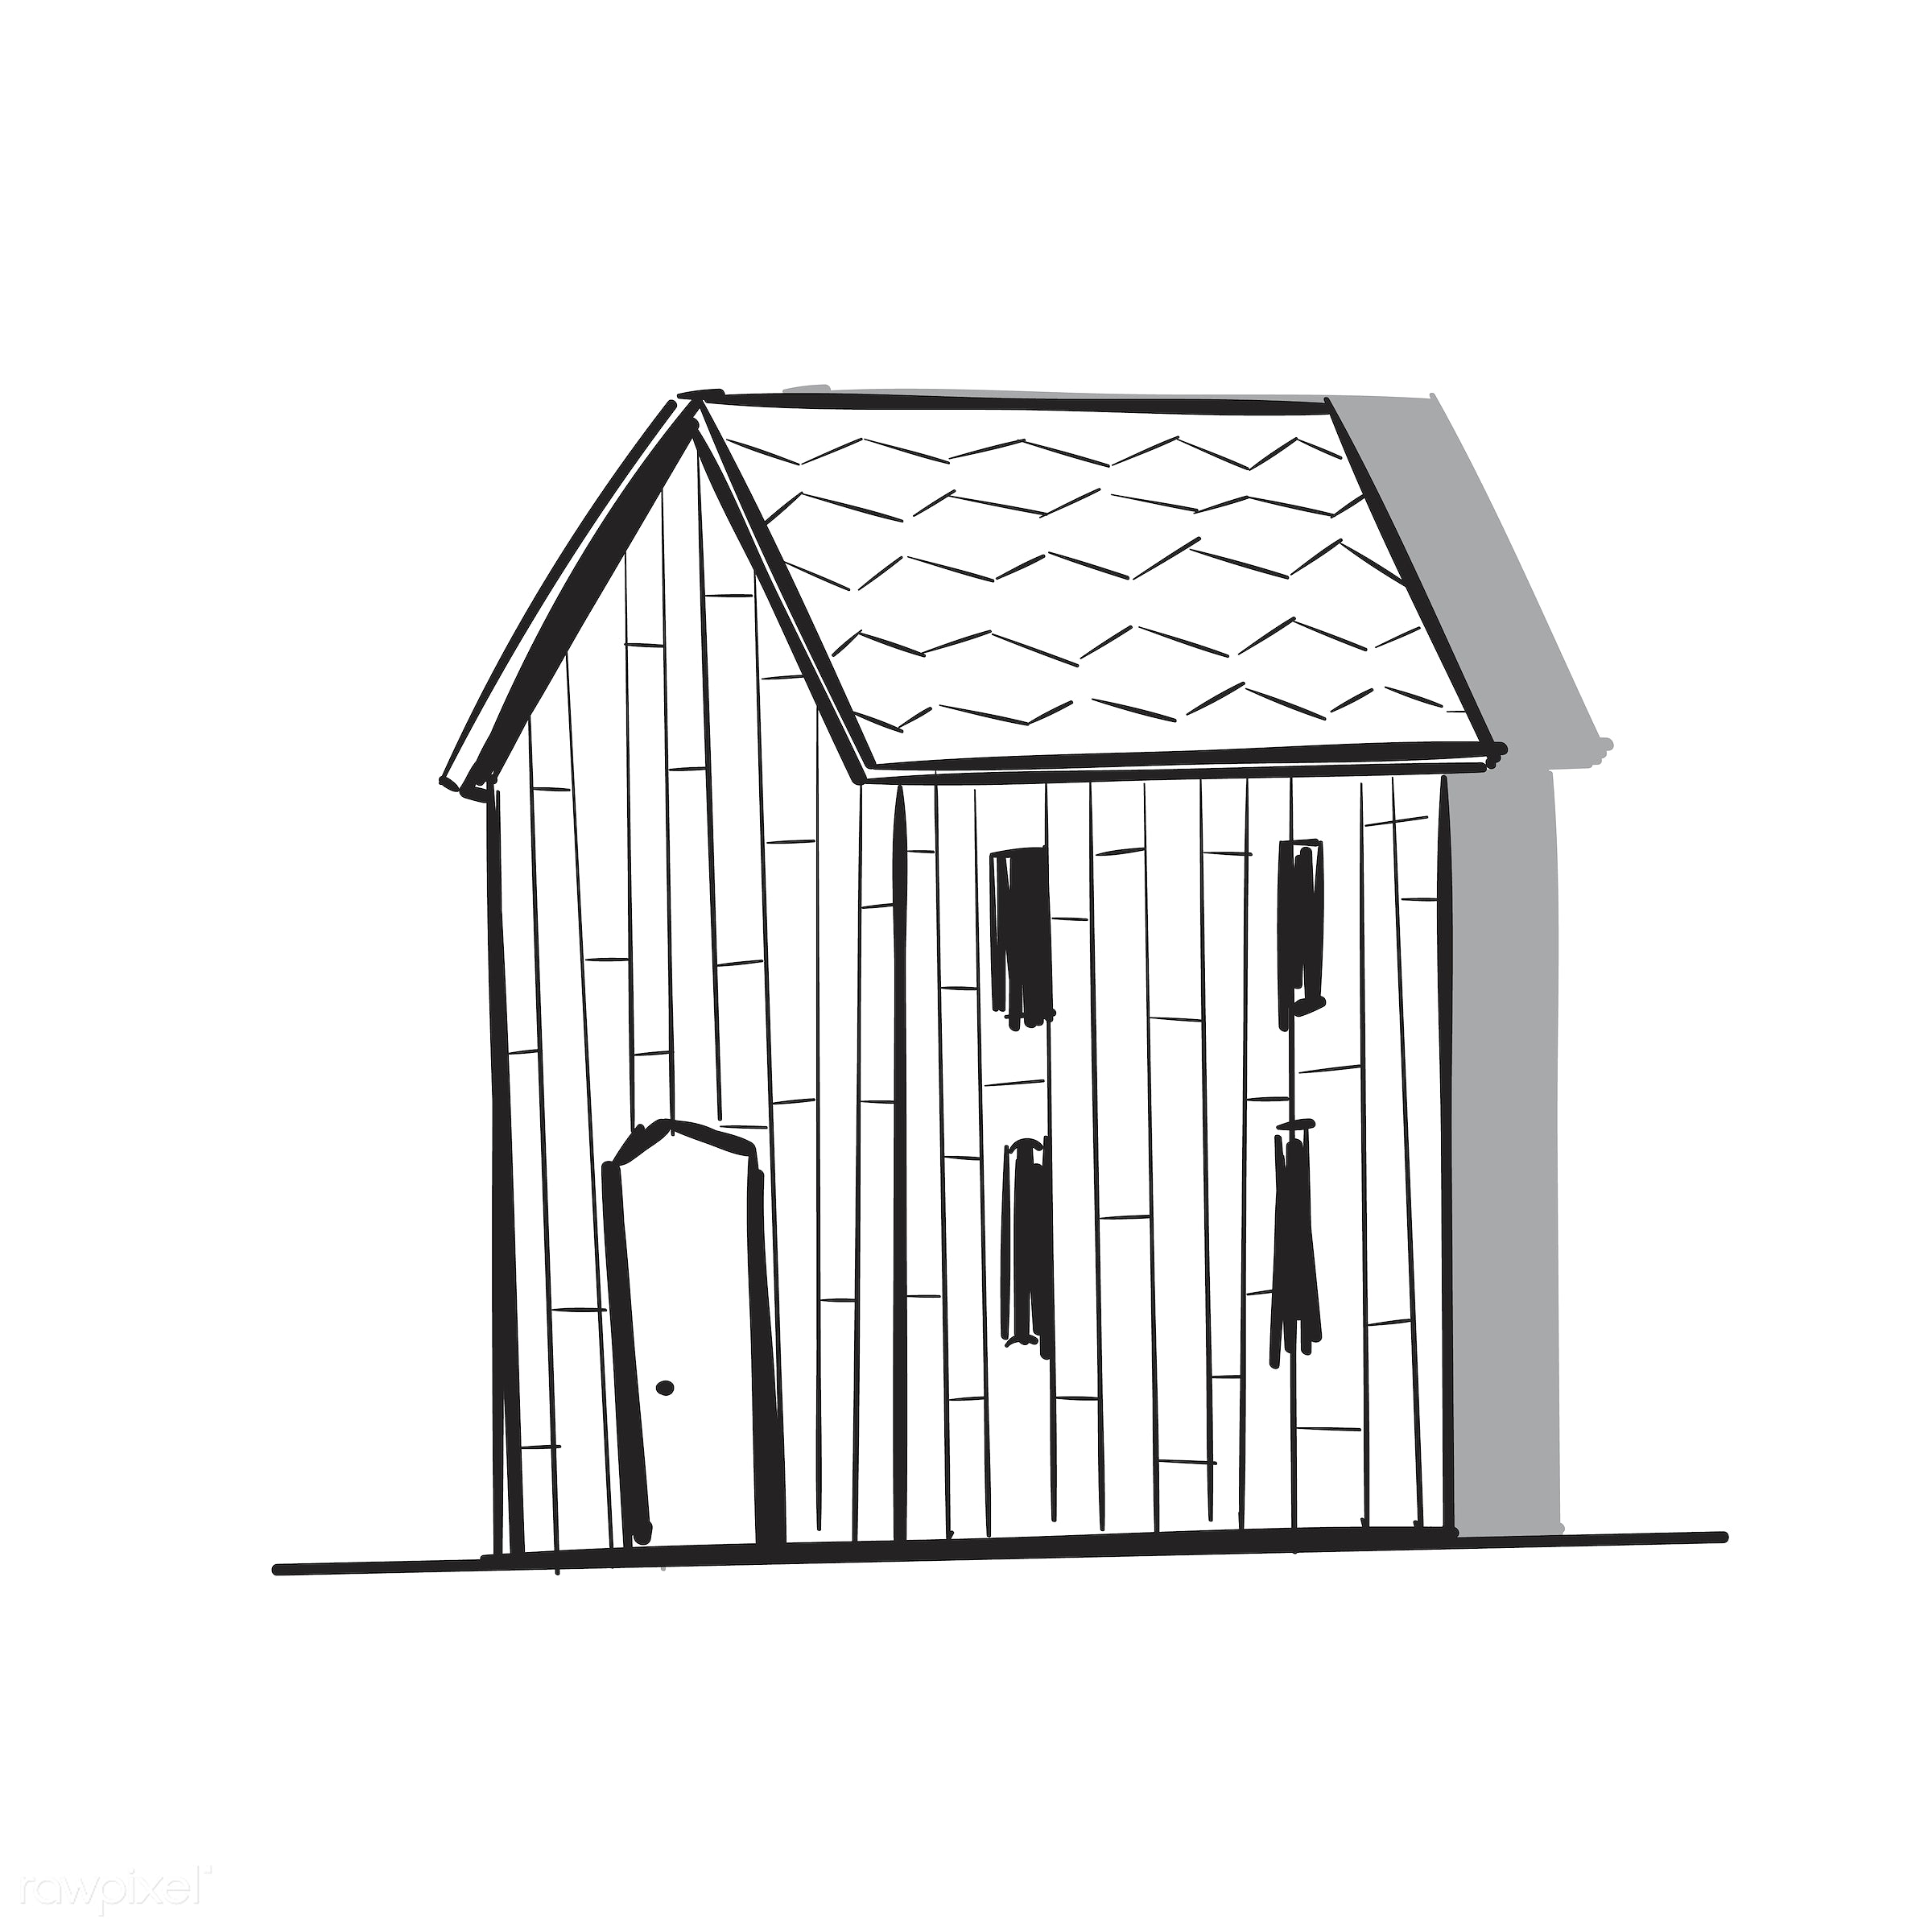 Hand drawing illustration of lifestyle concept - barn, artwork, creativity, design, draw, drawing, drawn, freedom, graphic,...